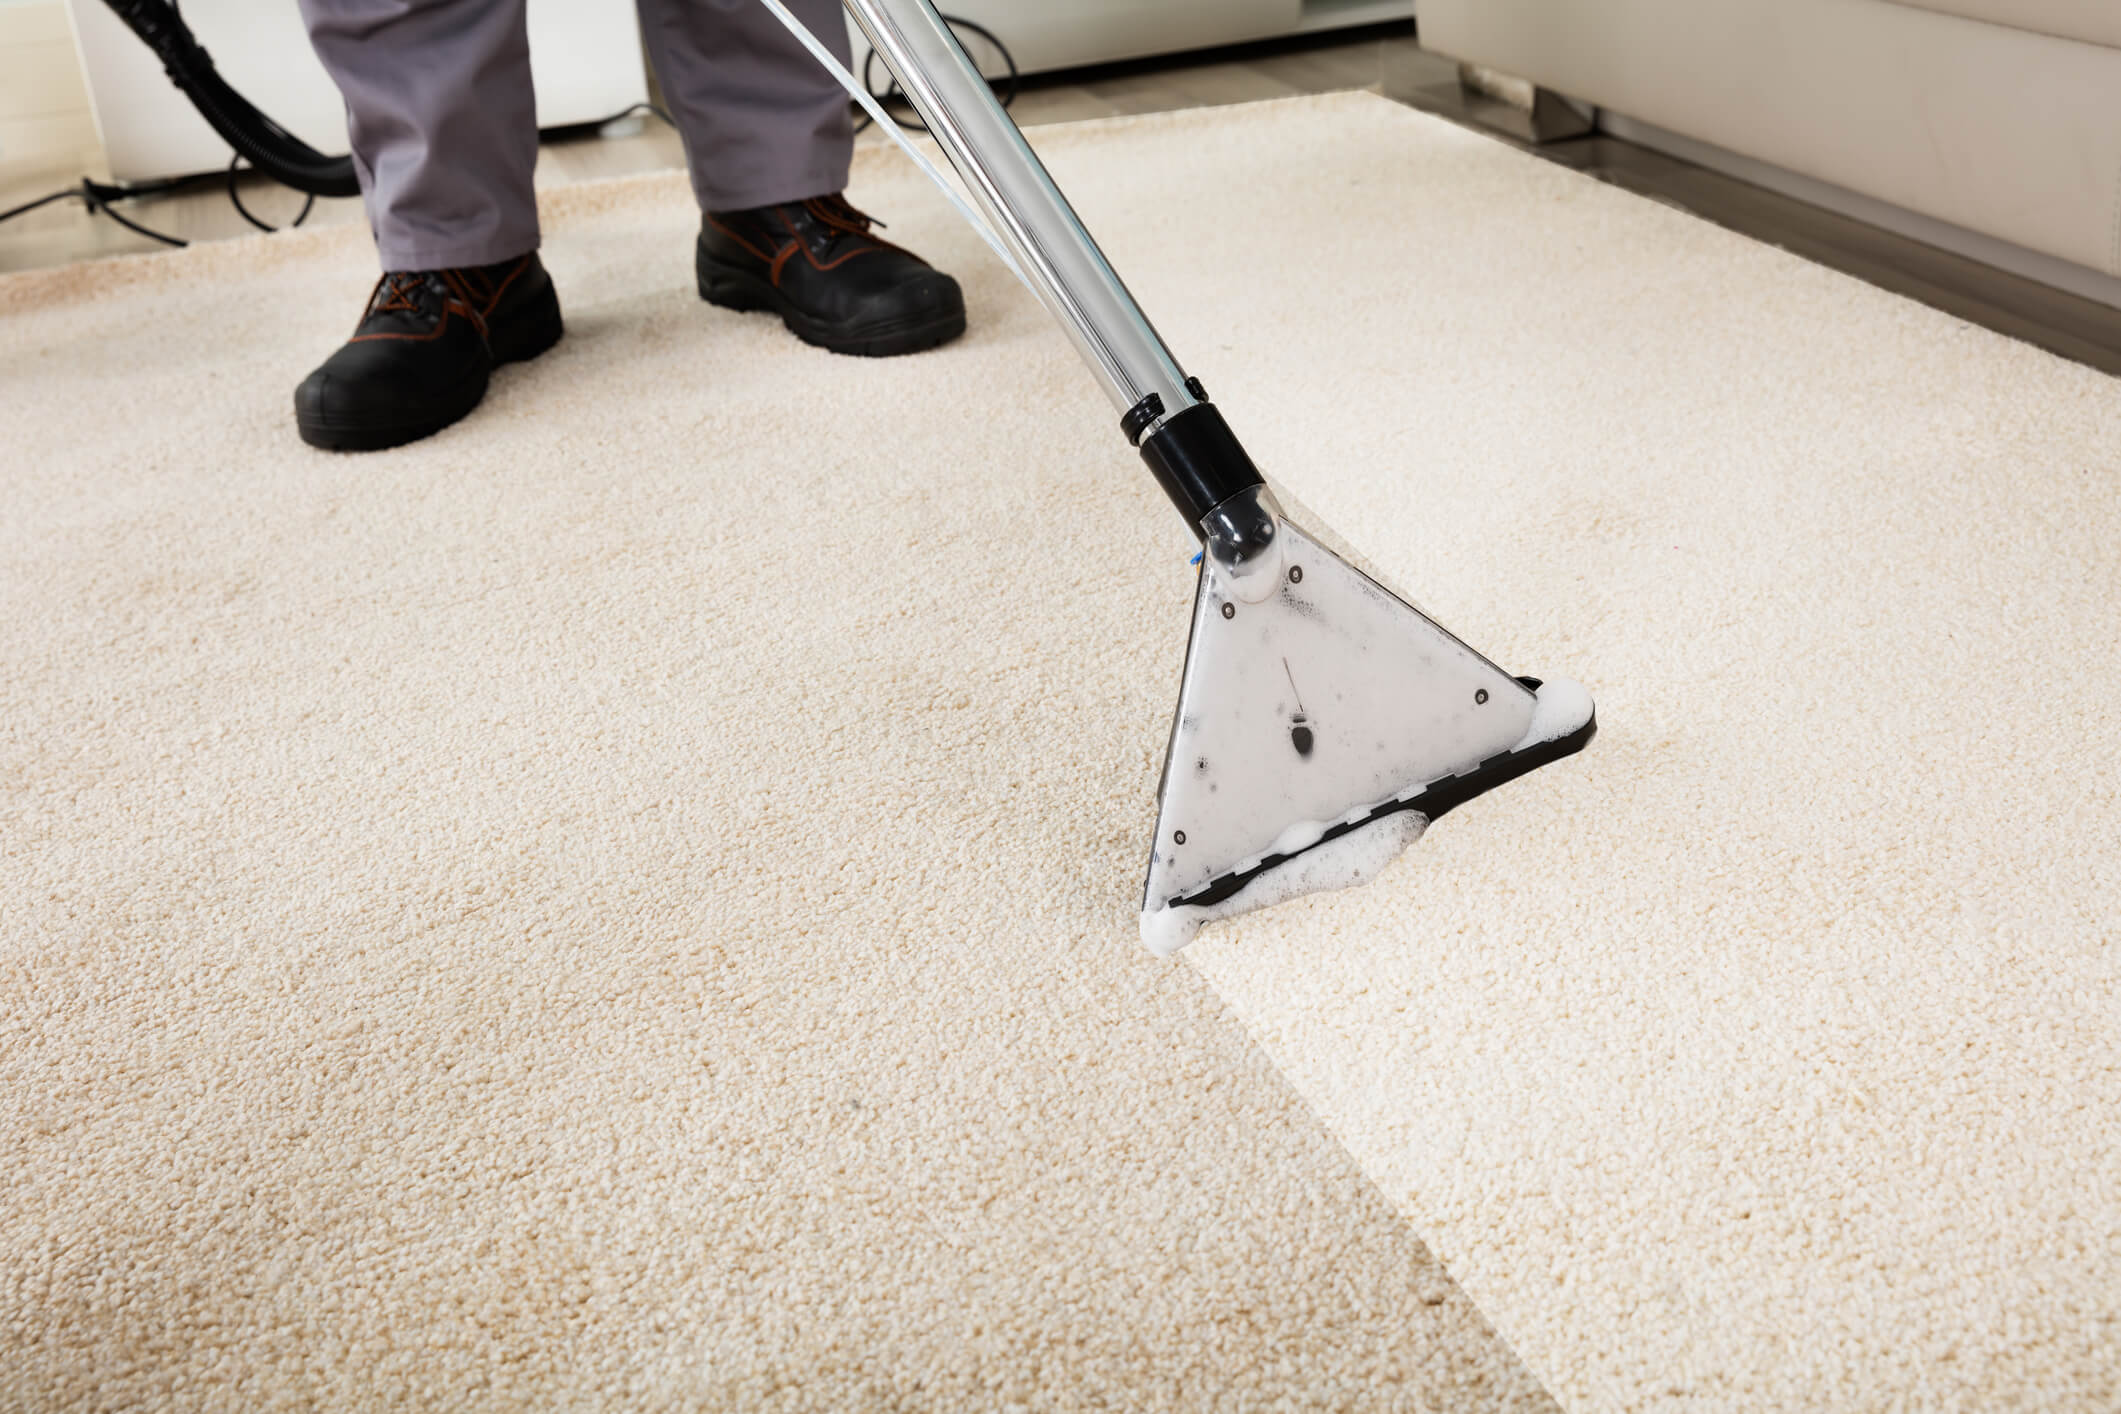 Carpet cleaning and treatments